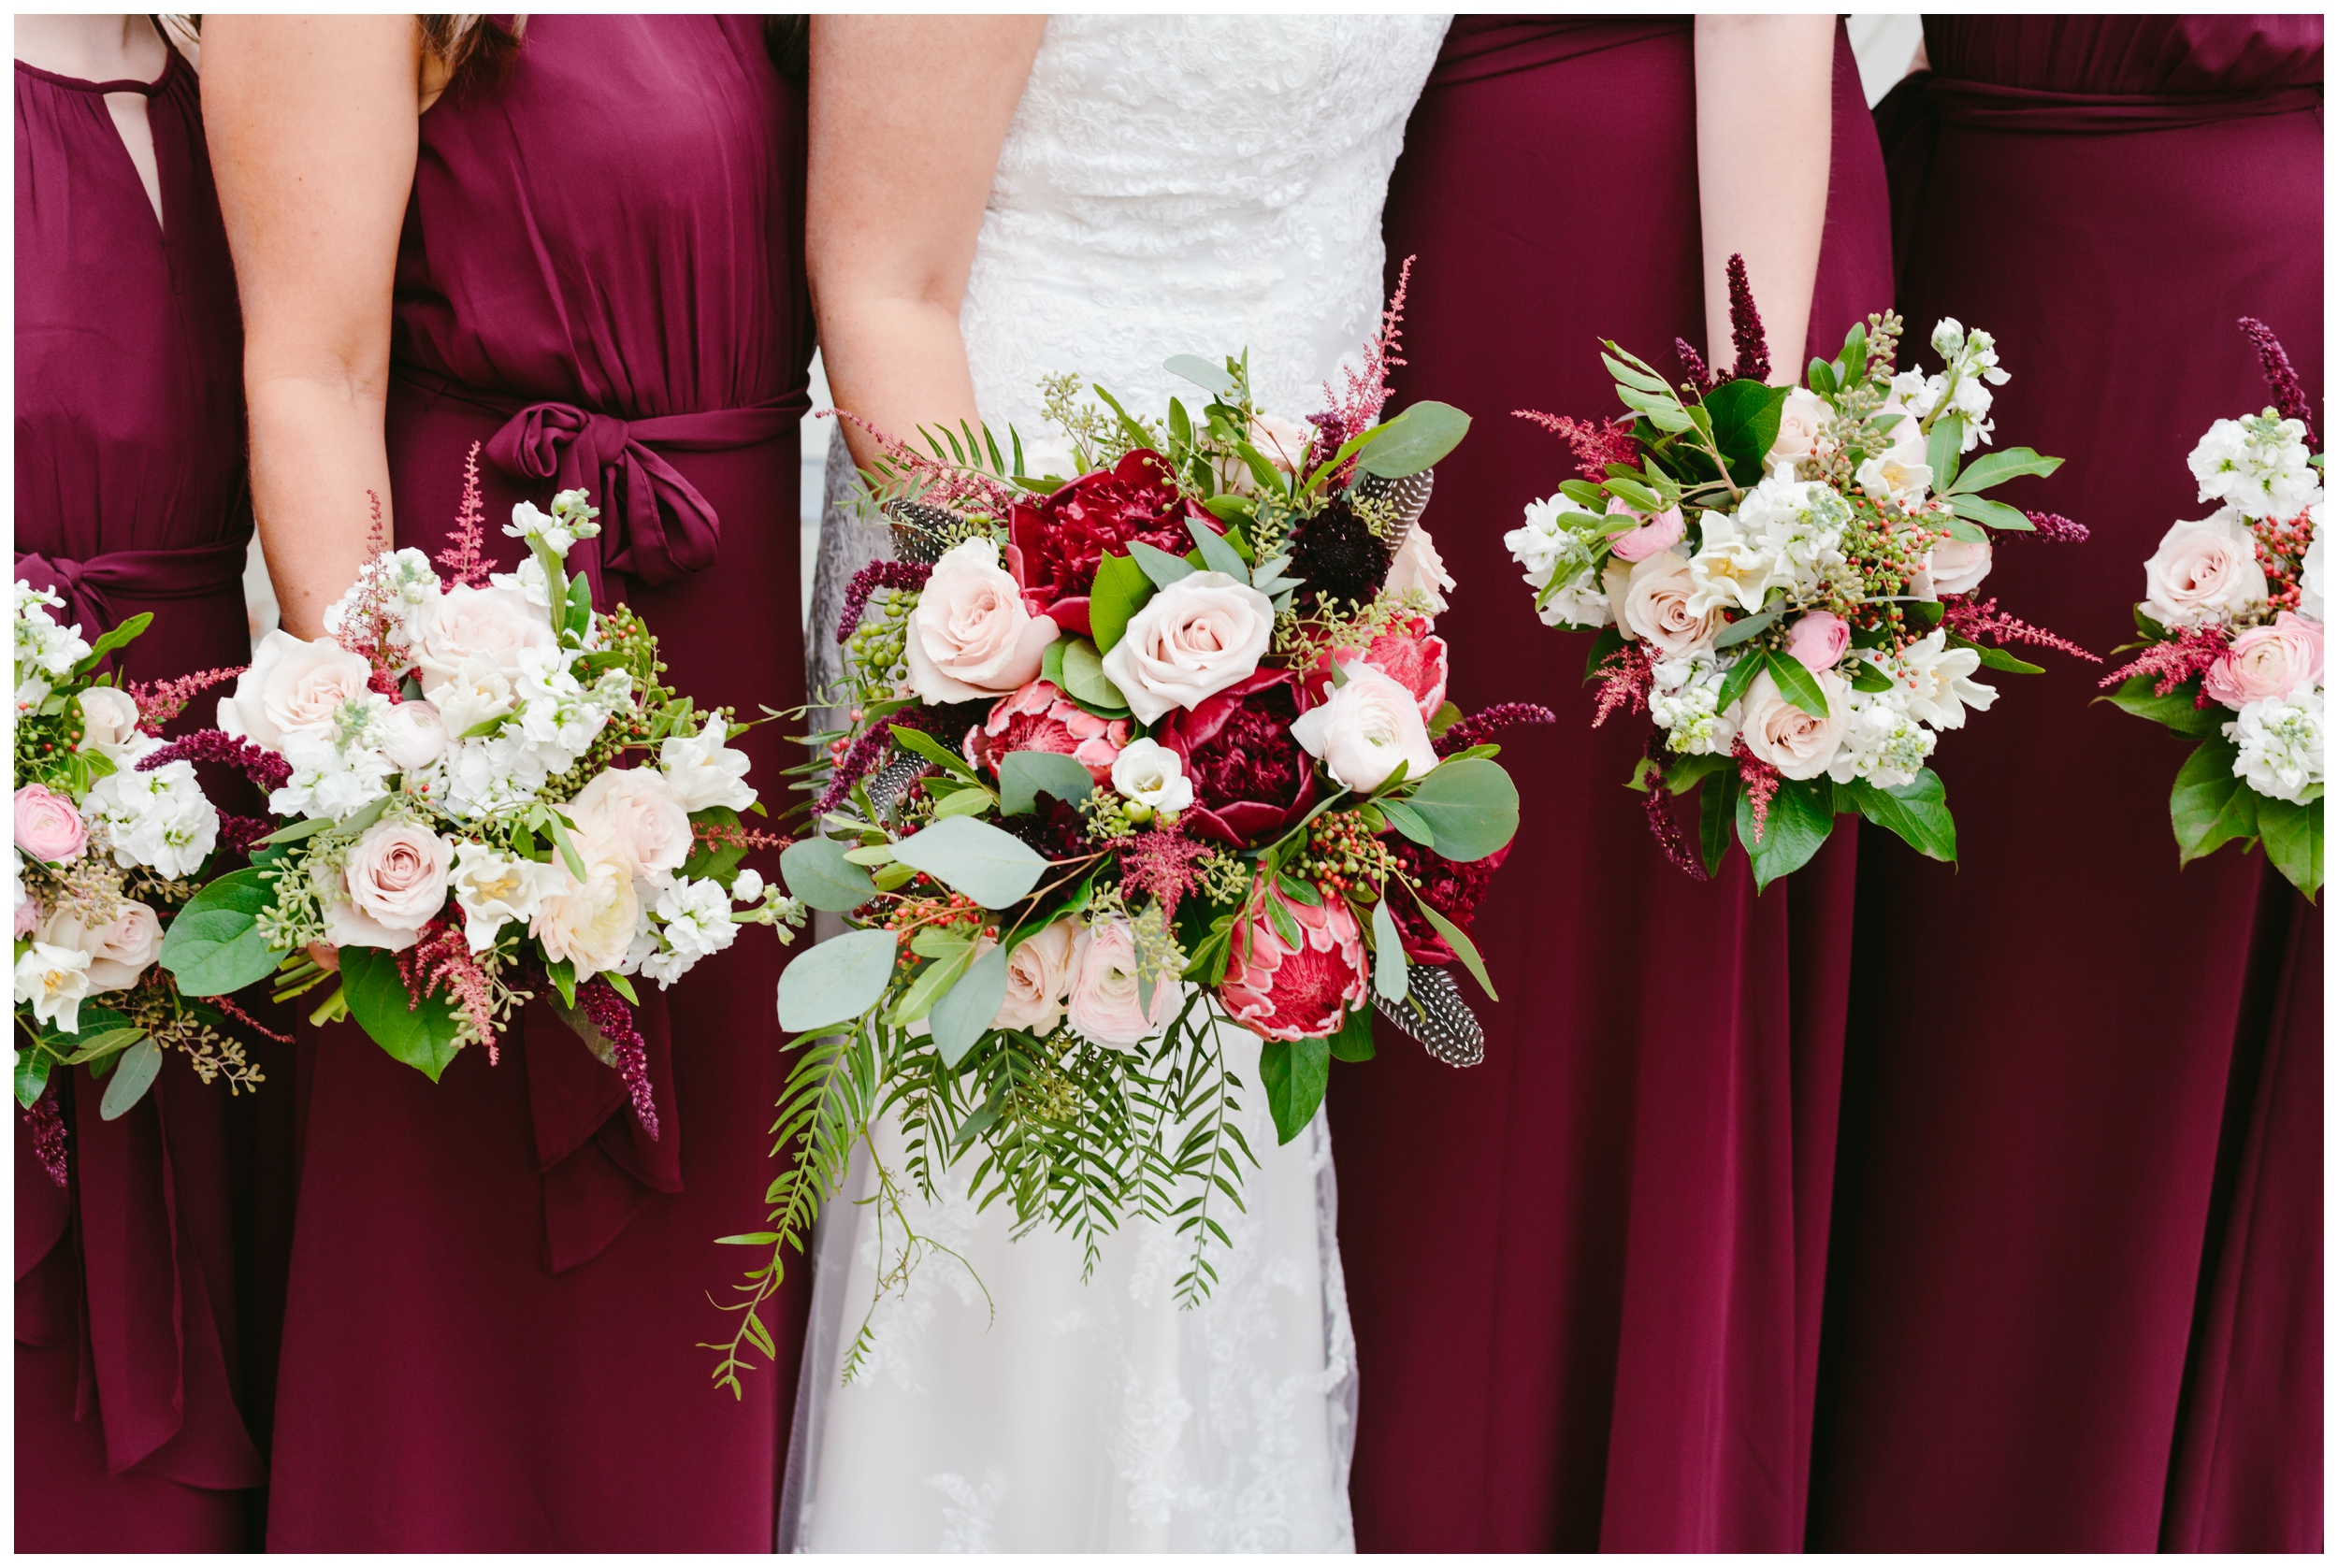 what a beautiful color scheme the bride chose. frampton's florals did an amazing job with the flowers!